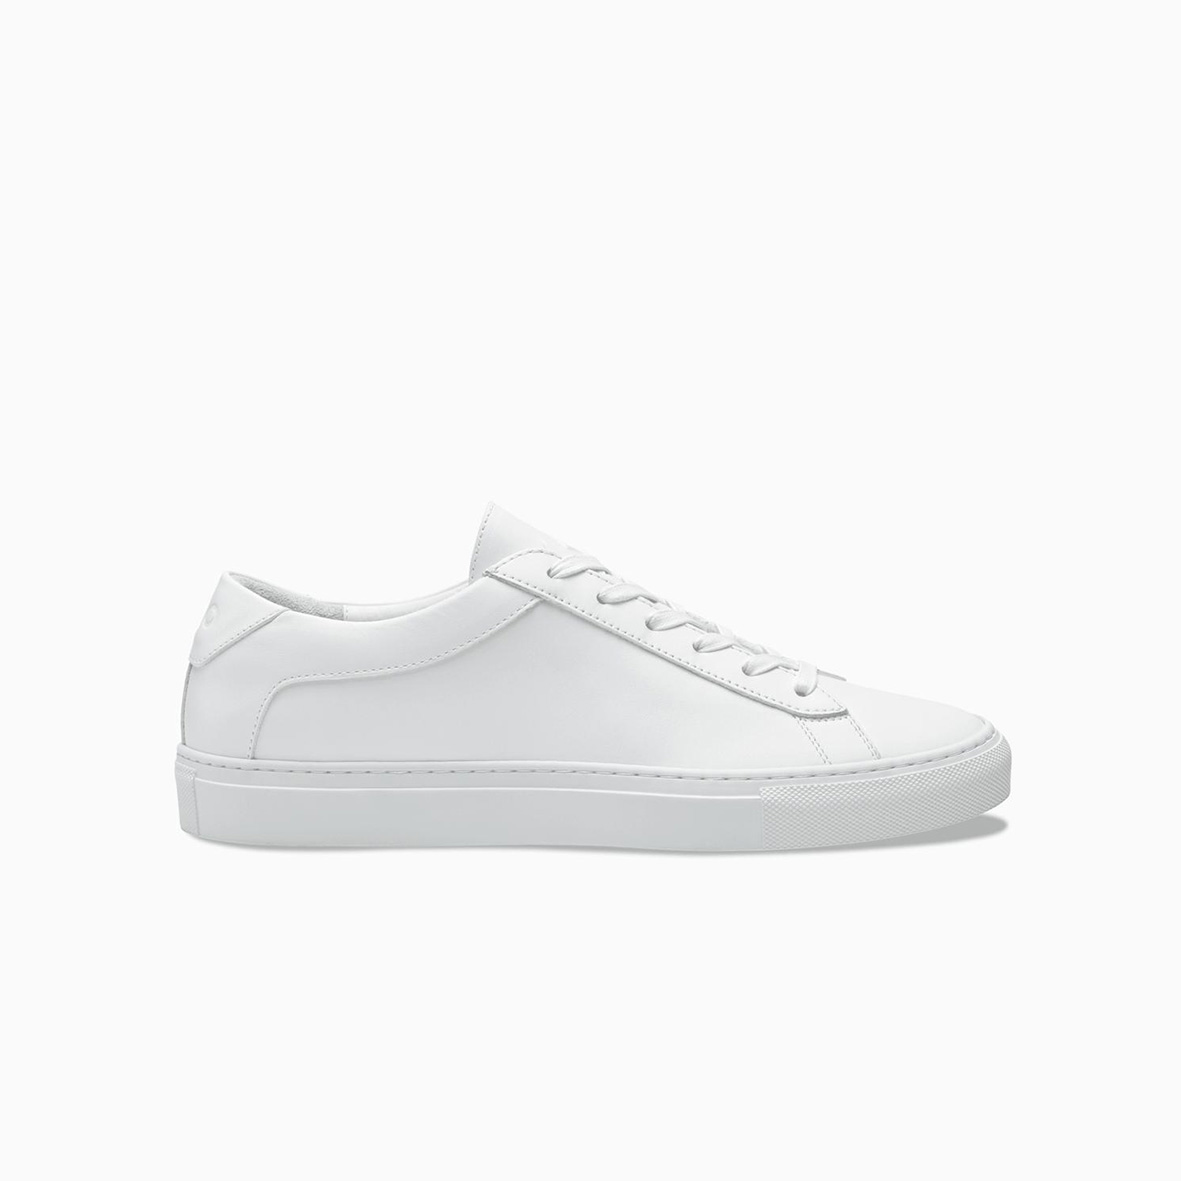 Koio Leather Sneakers Made in Italy